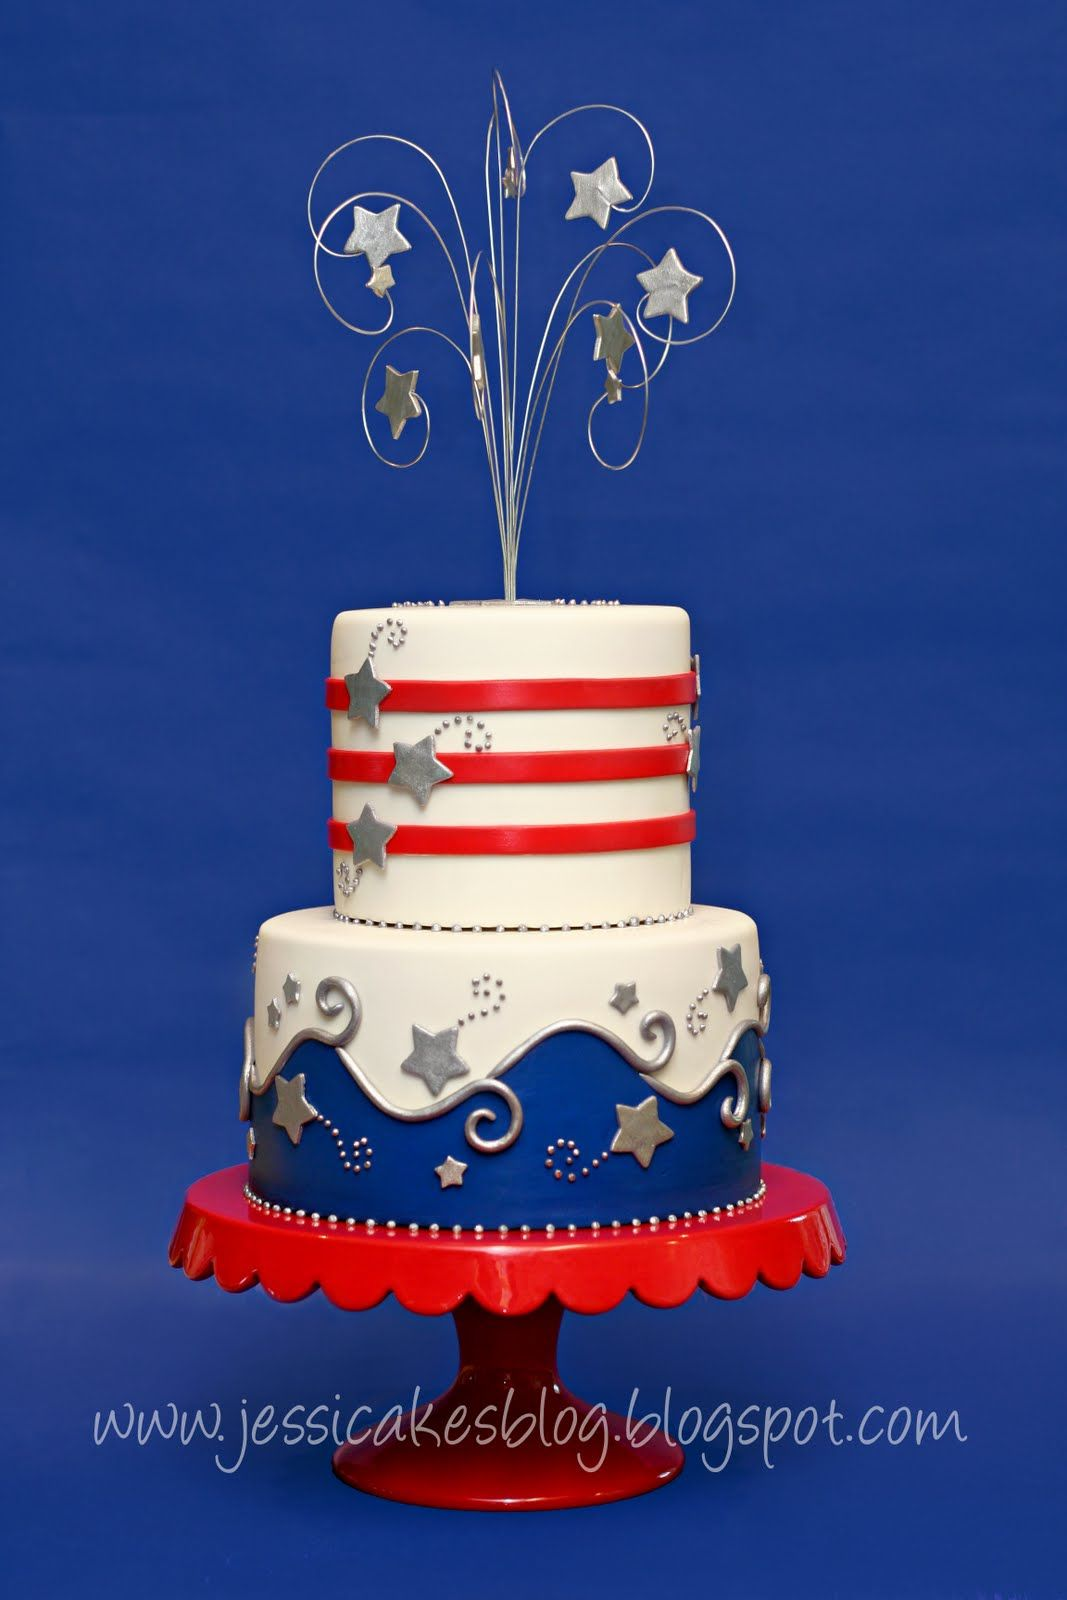 Cake Decorations For July 4th : Happy 4th of July Cake Cakes Beautiful Cakes for the ...